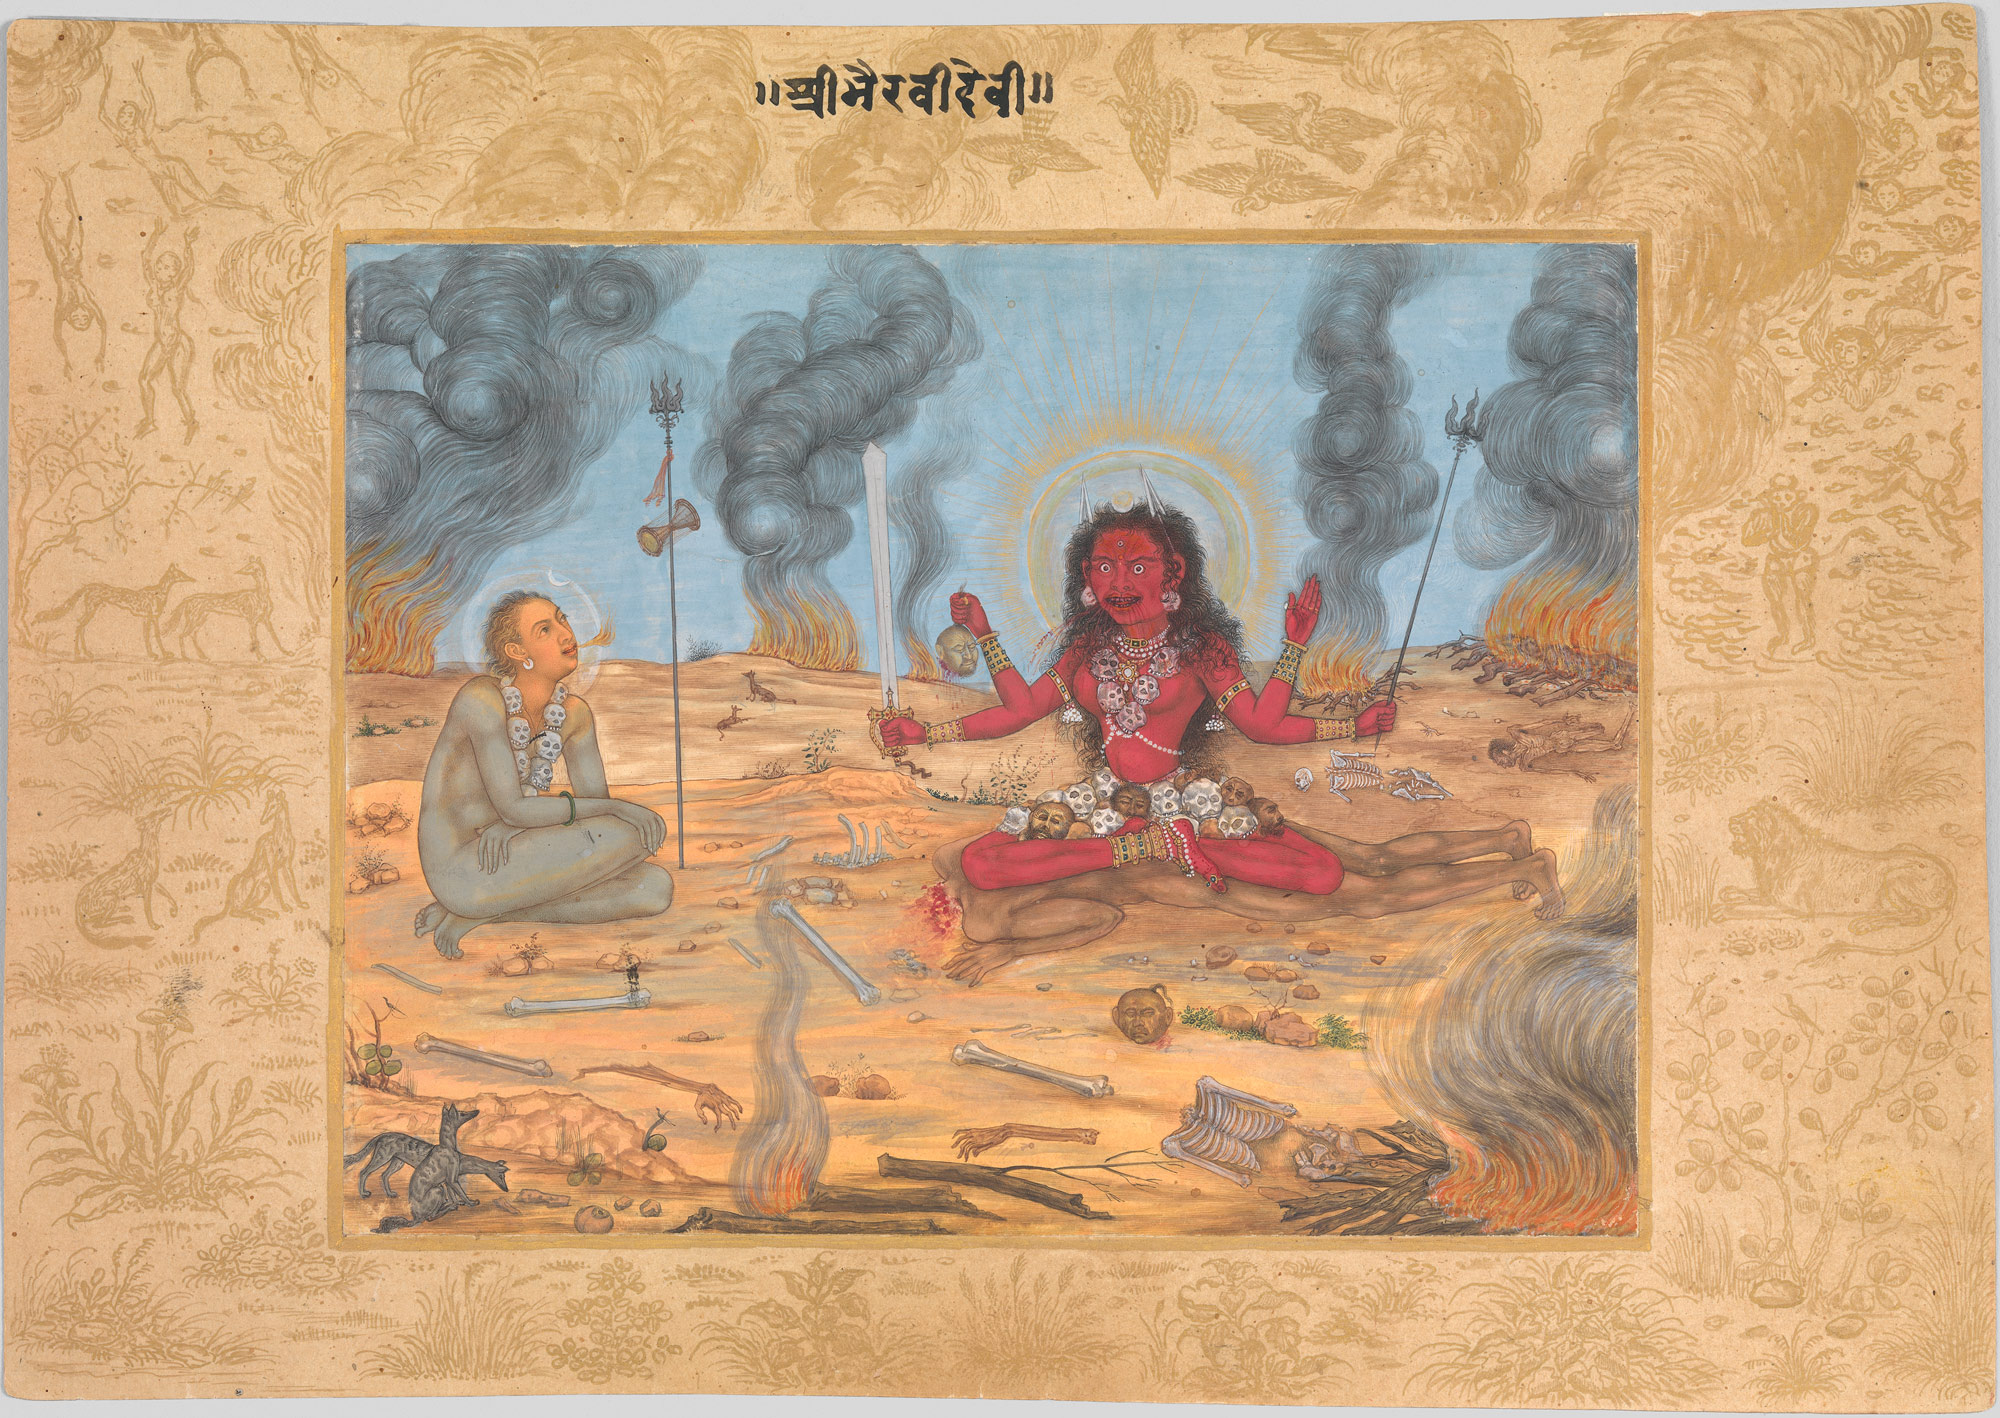 the goddess bhairavi devi with shiva attributed to payag